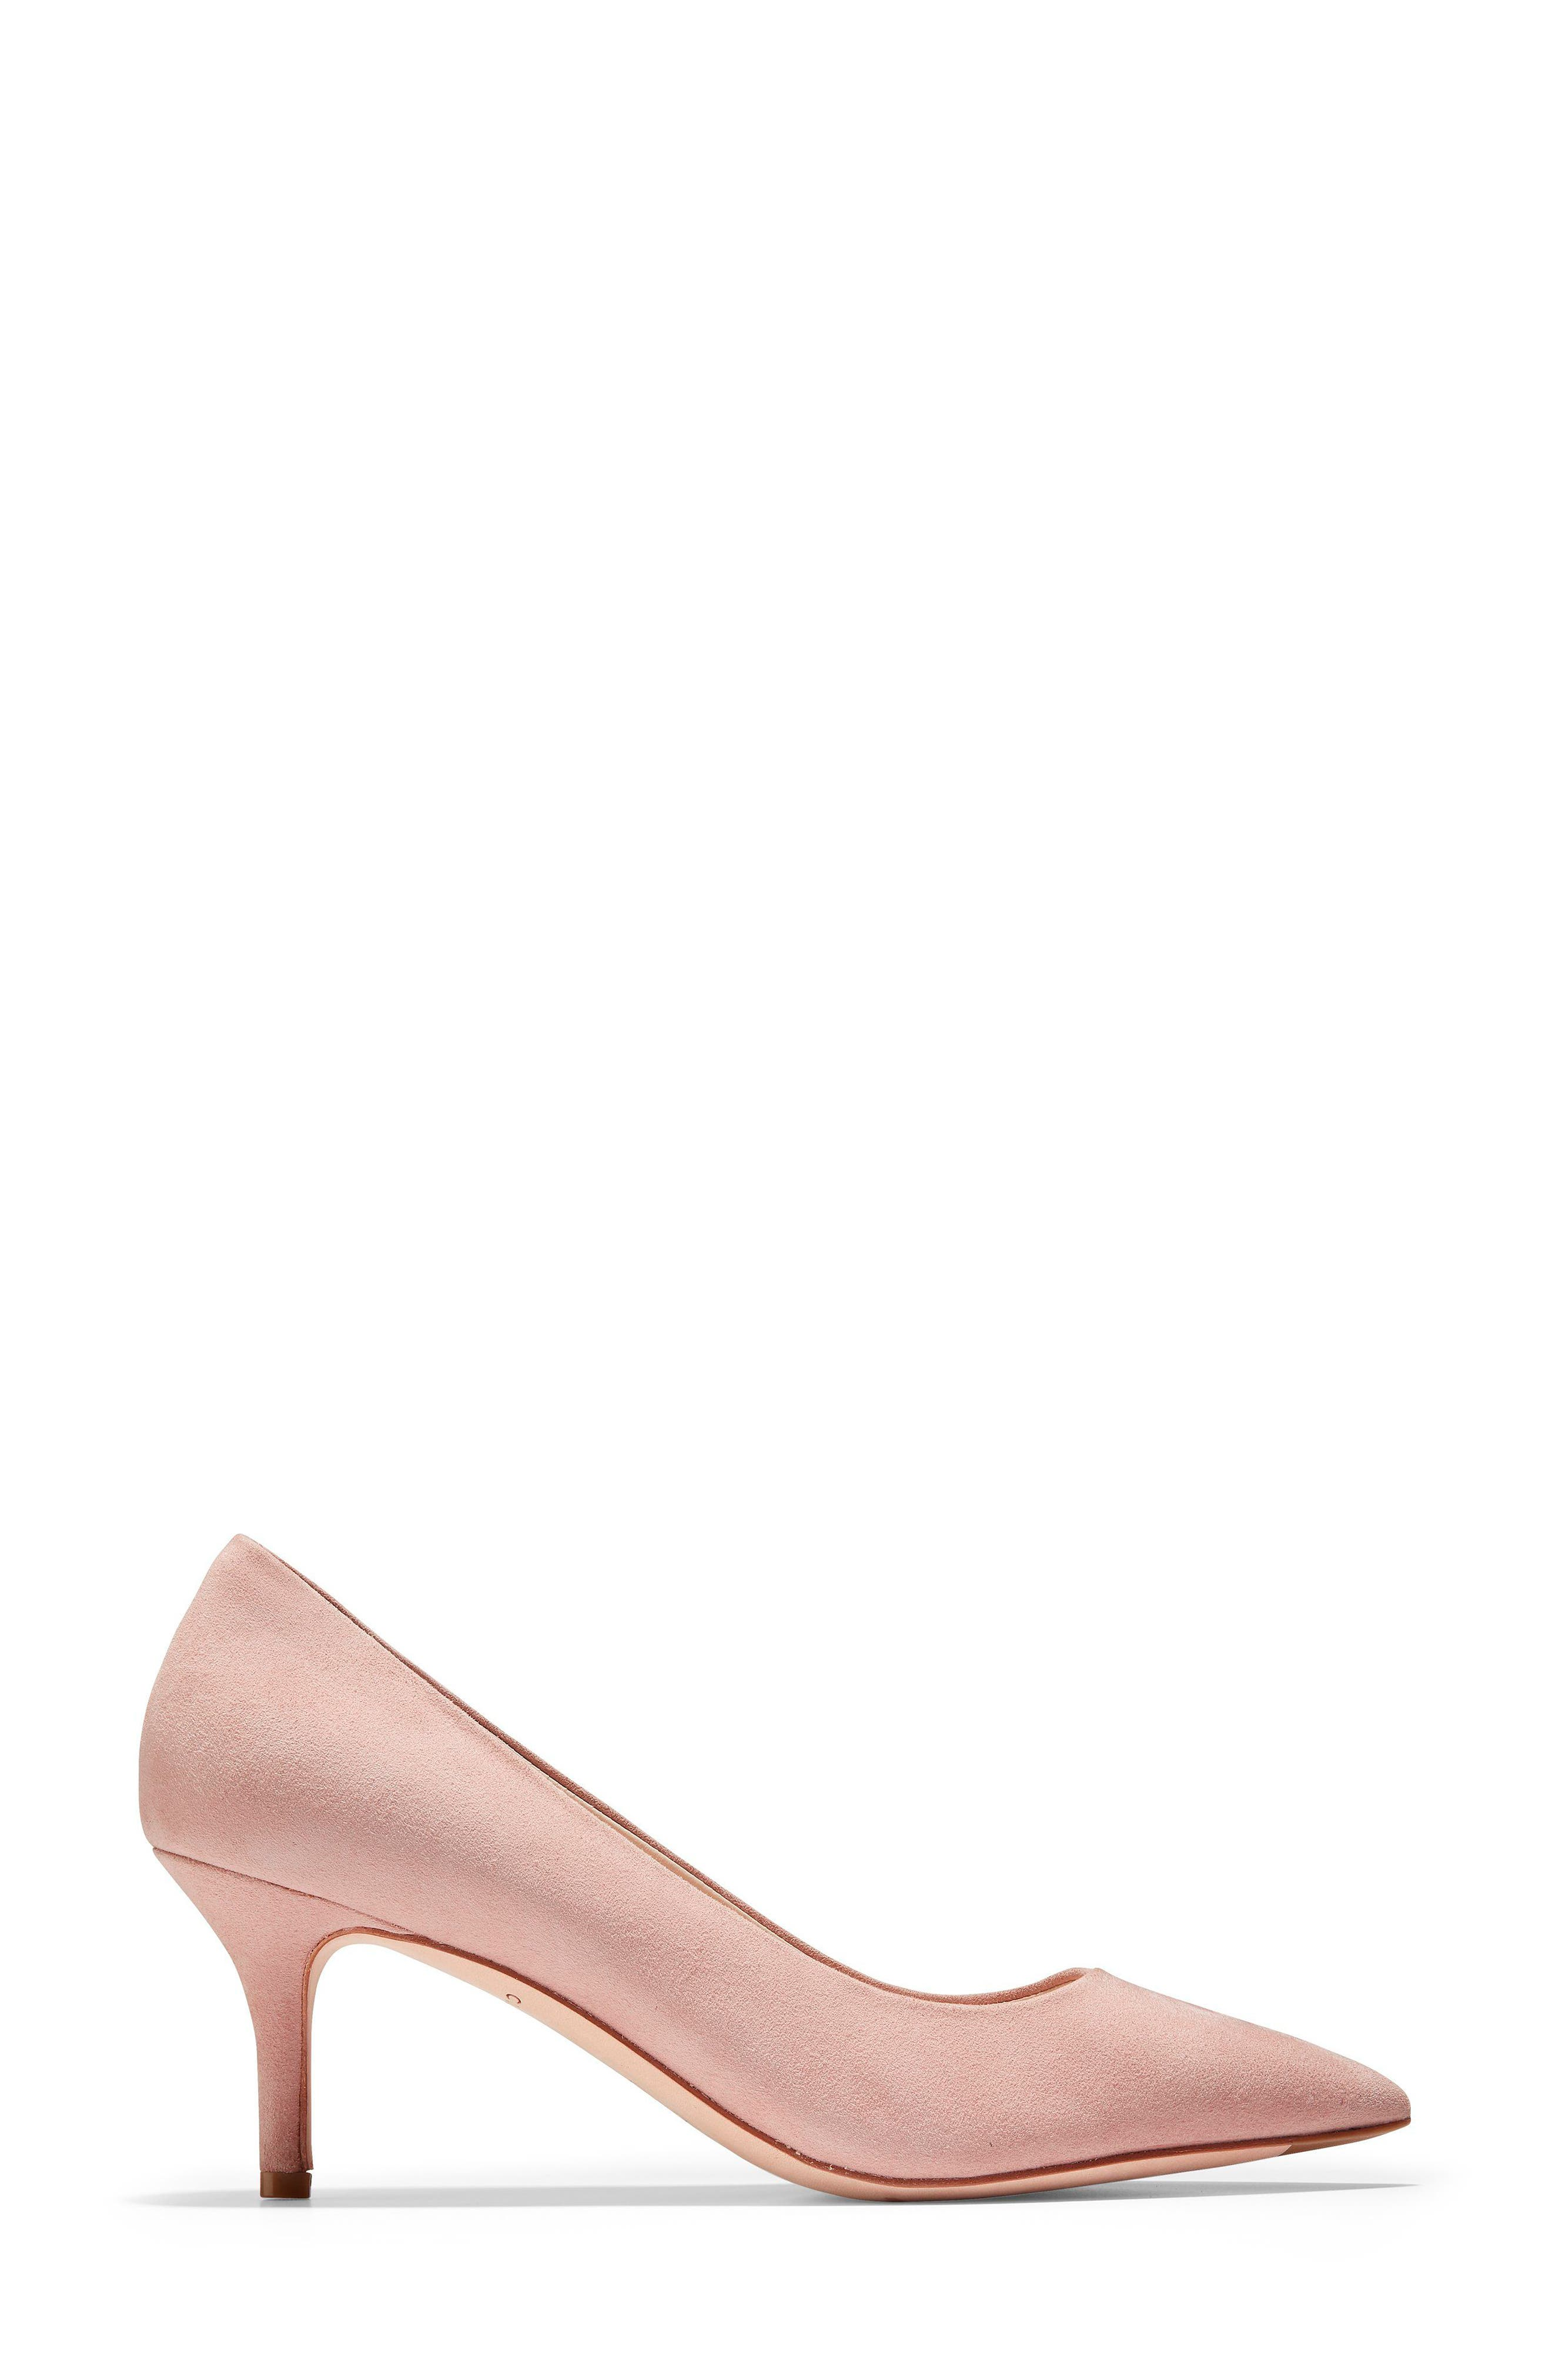 Vesta Pointy Toe Pump,                             Alternate thumbnail 3, color,                             SILVER PINK SUEDE